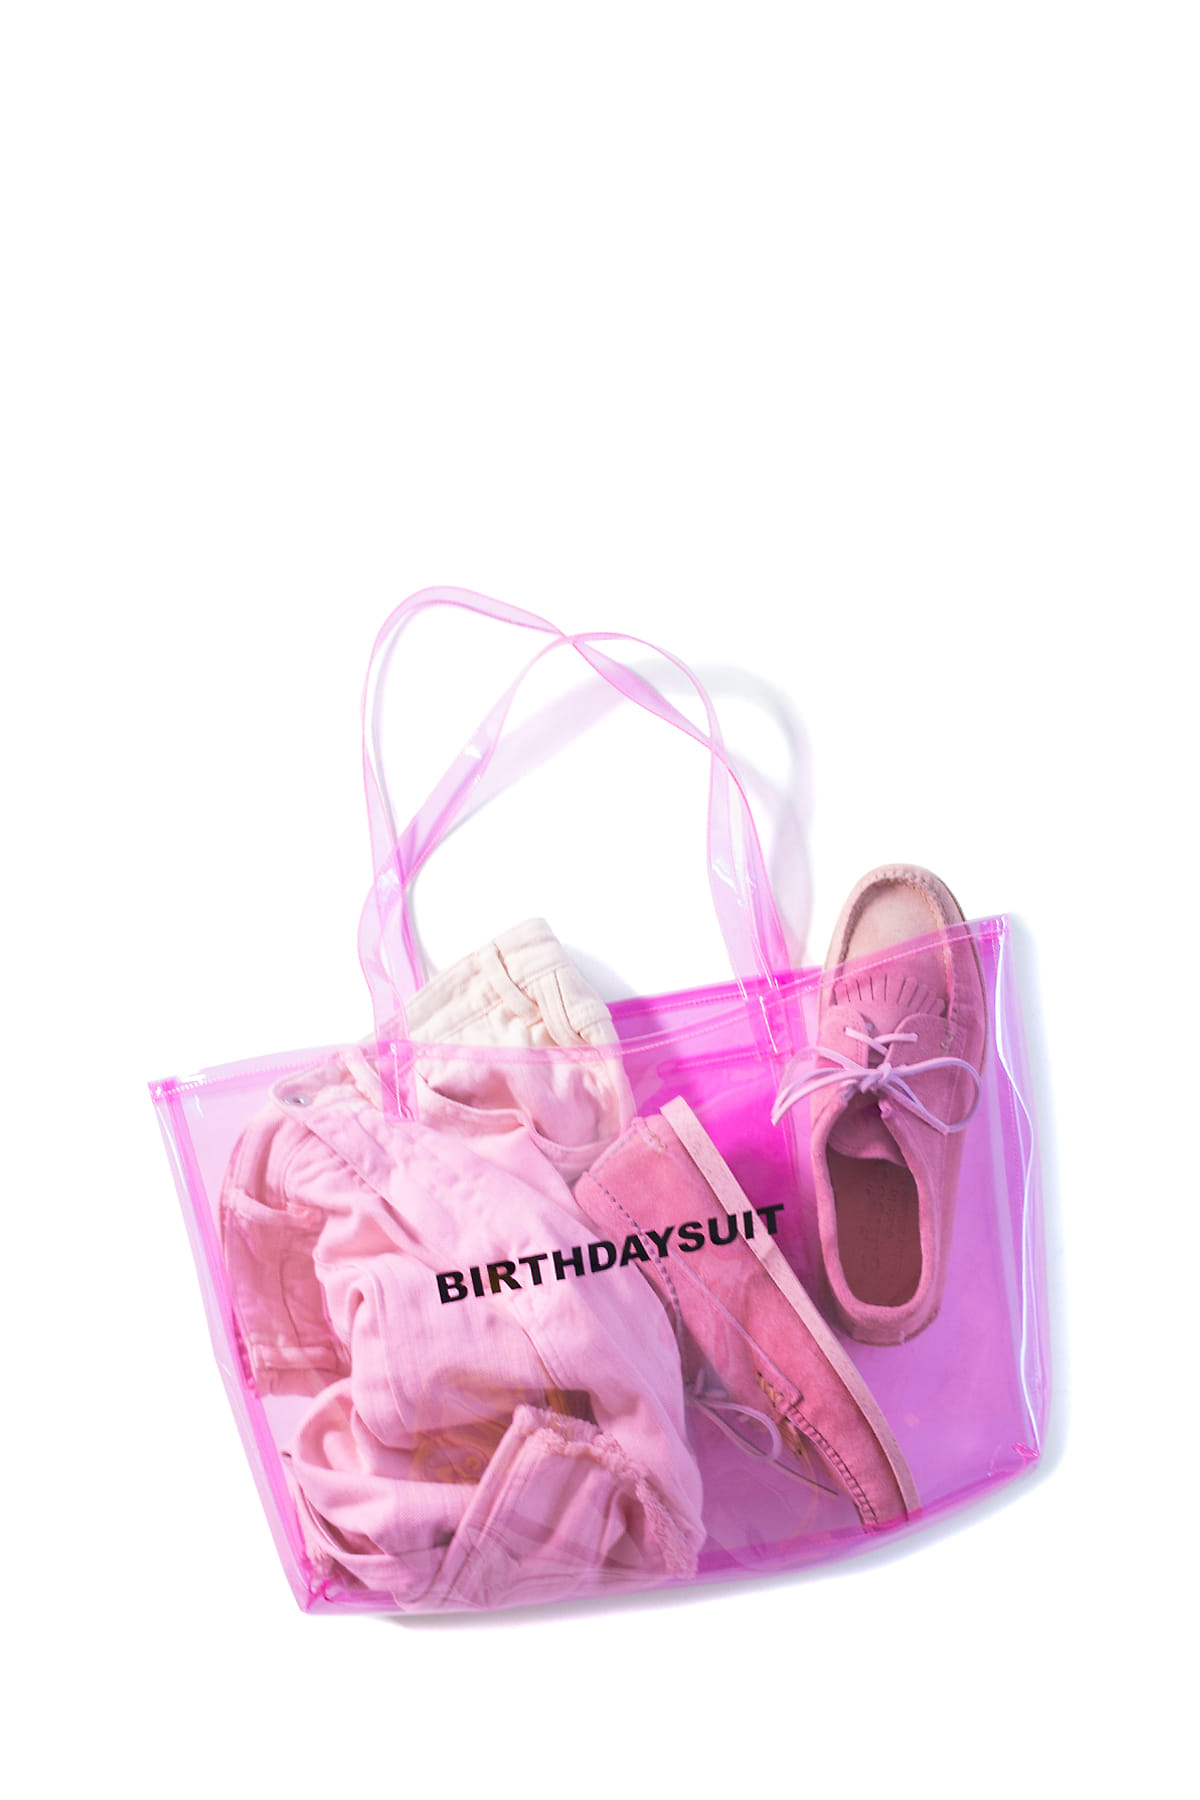 BIRTHDAYSUIT : LOGO PVC (Pink)